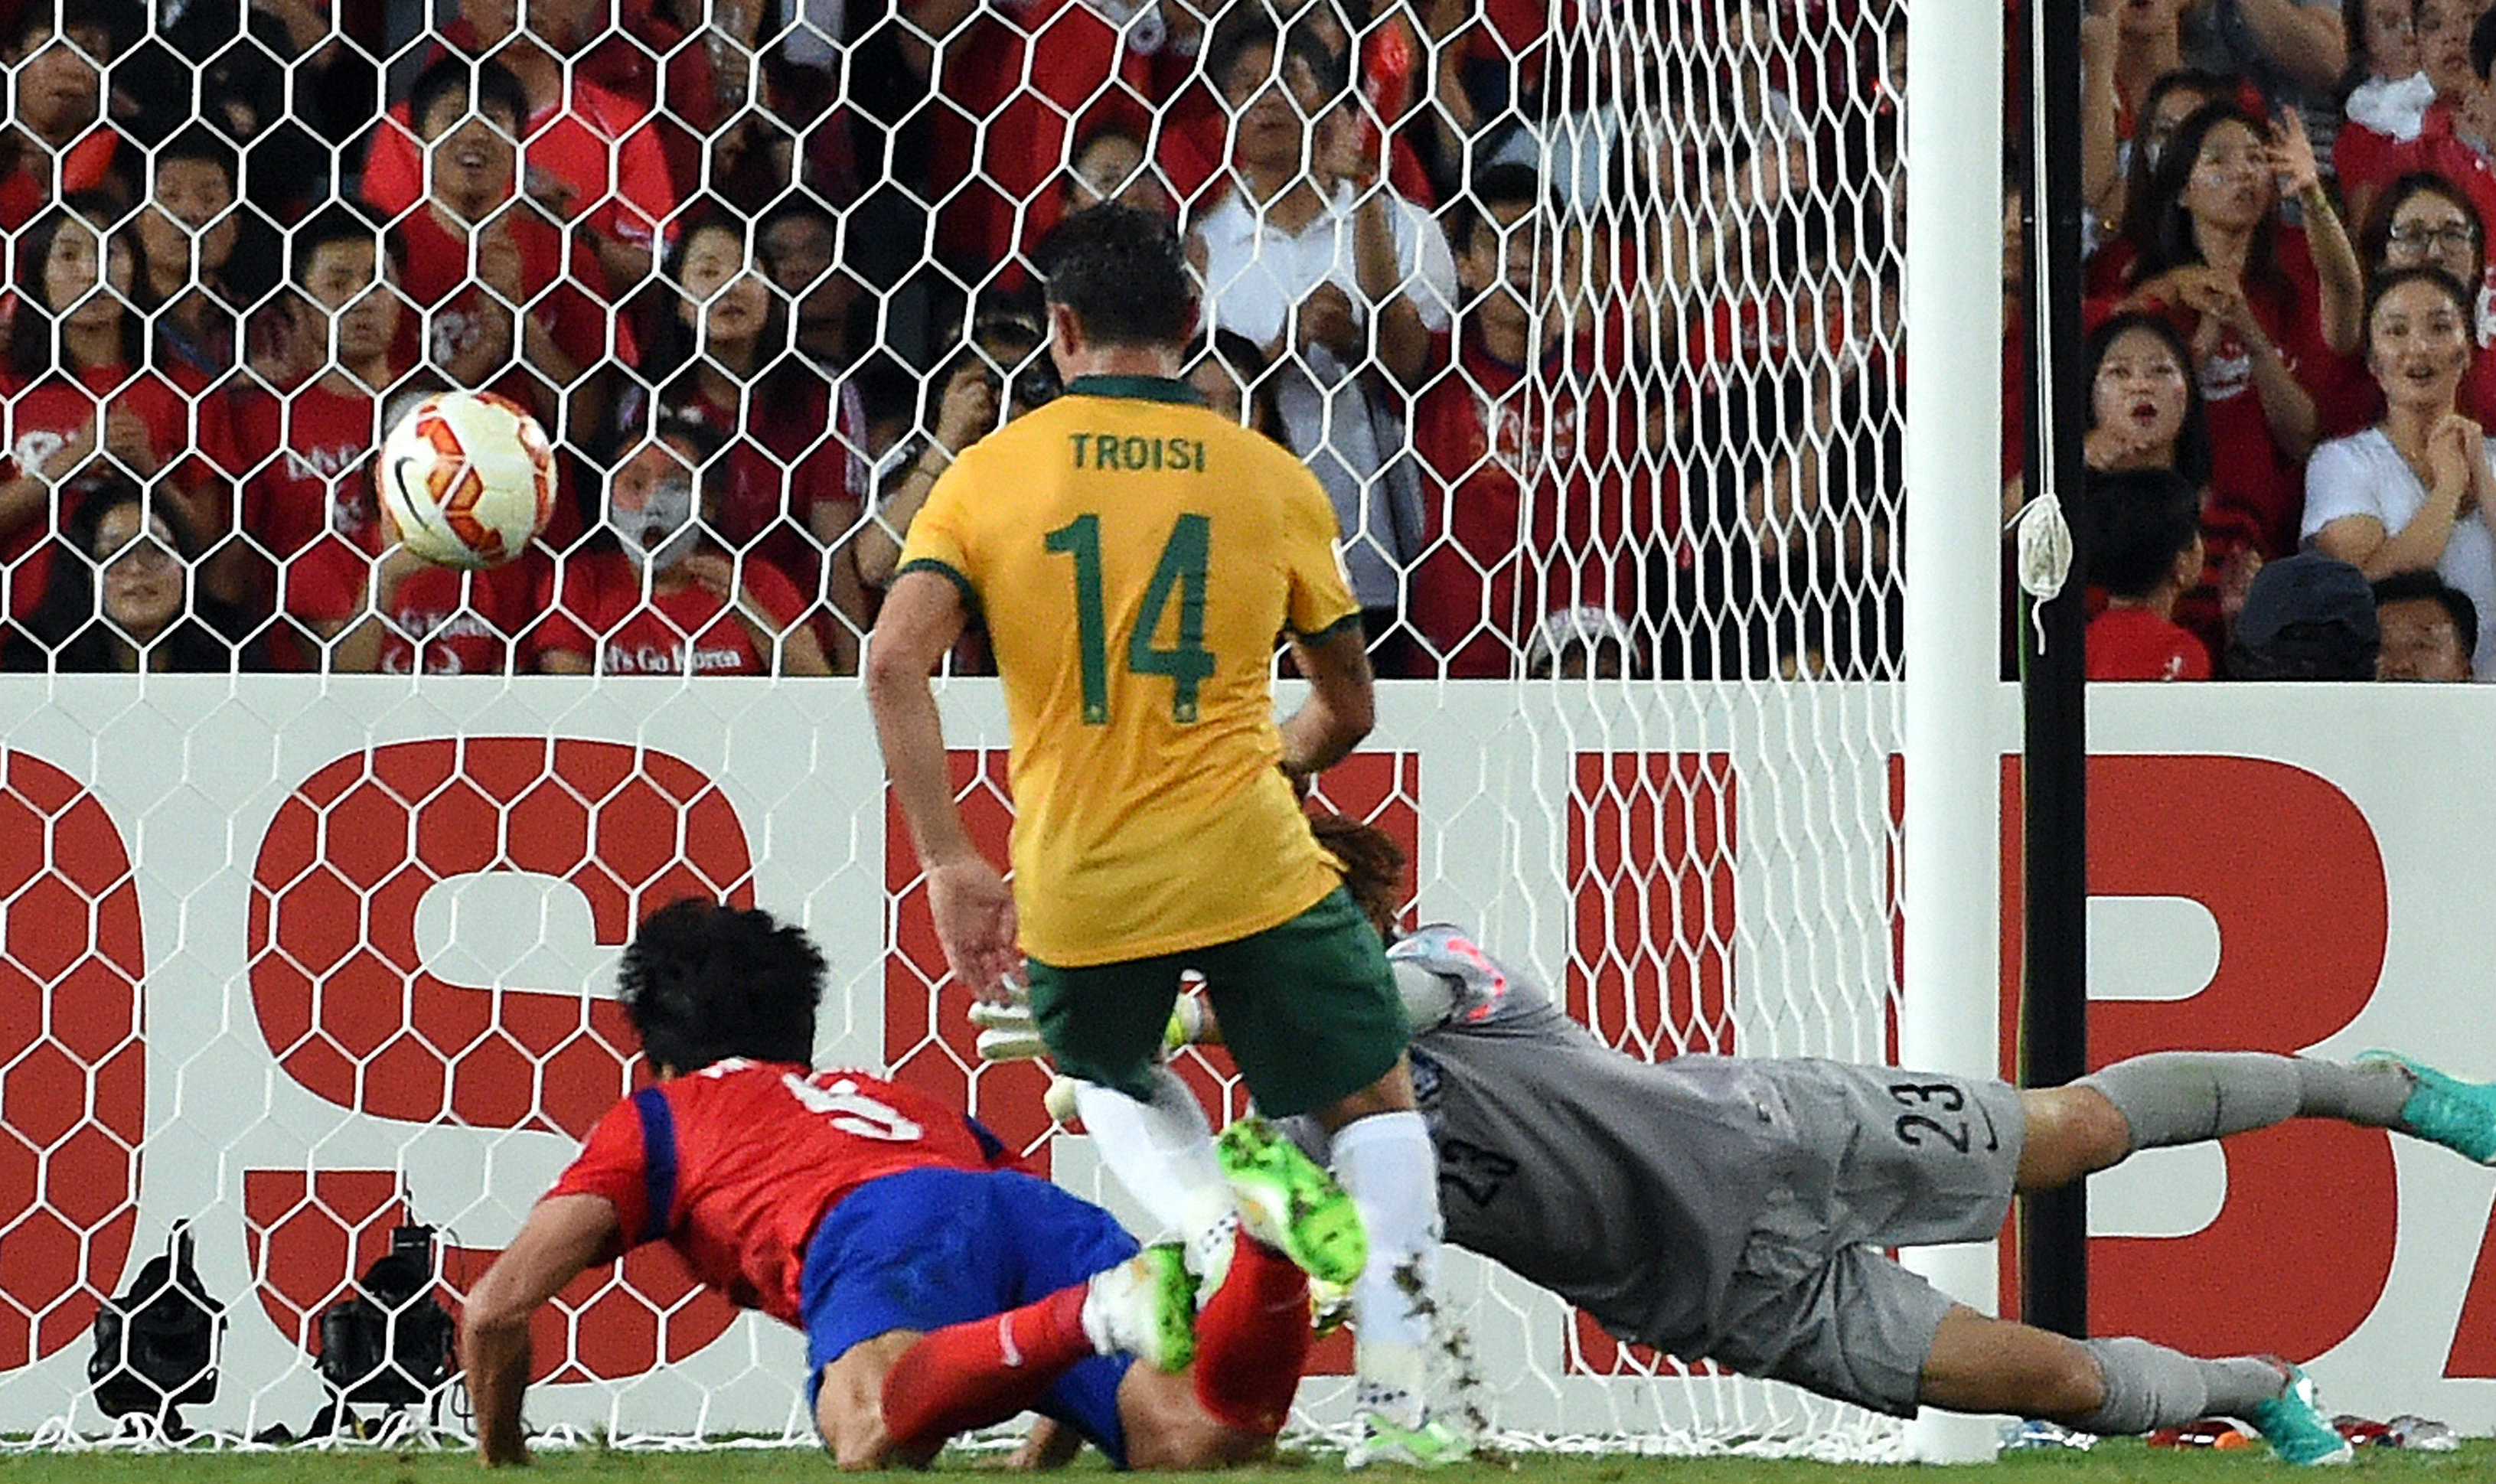 The moment. James Troisi sweeps home the winning goal against South Korea.